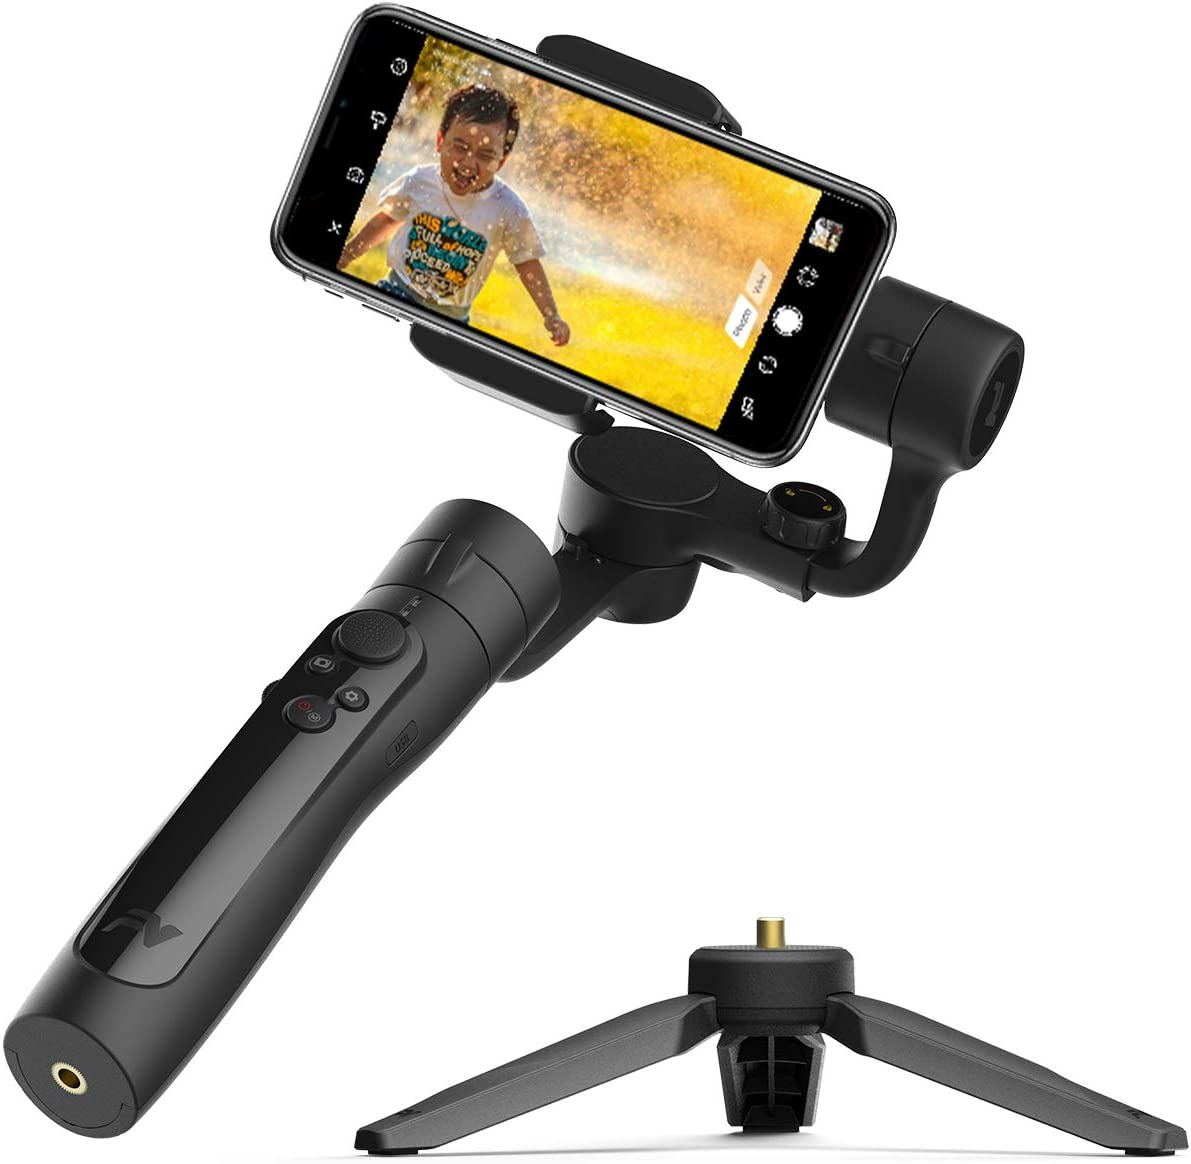 Freevision VILTA SE 3-Axis Stabilized Handheld Gimbal for Smartphone with Tripod Stand